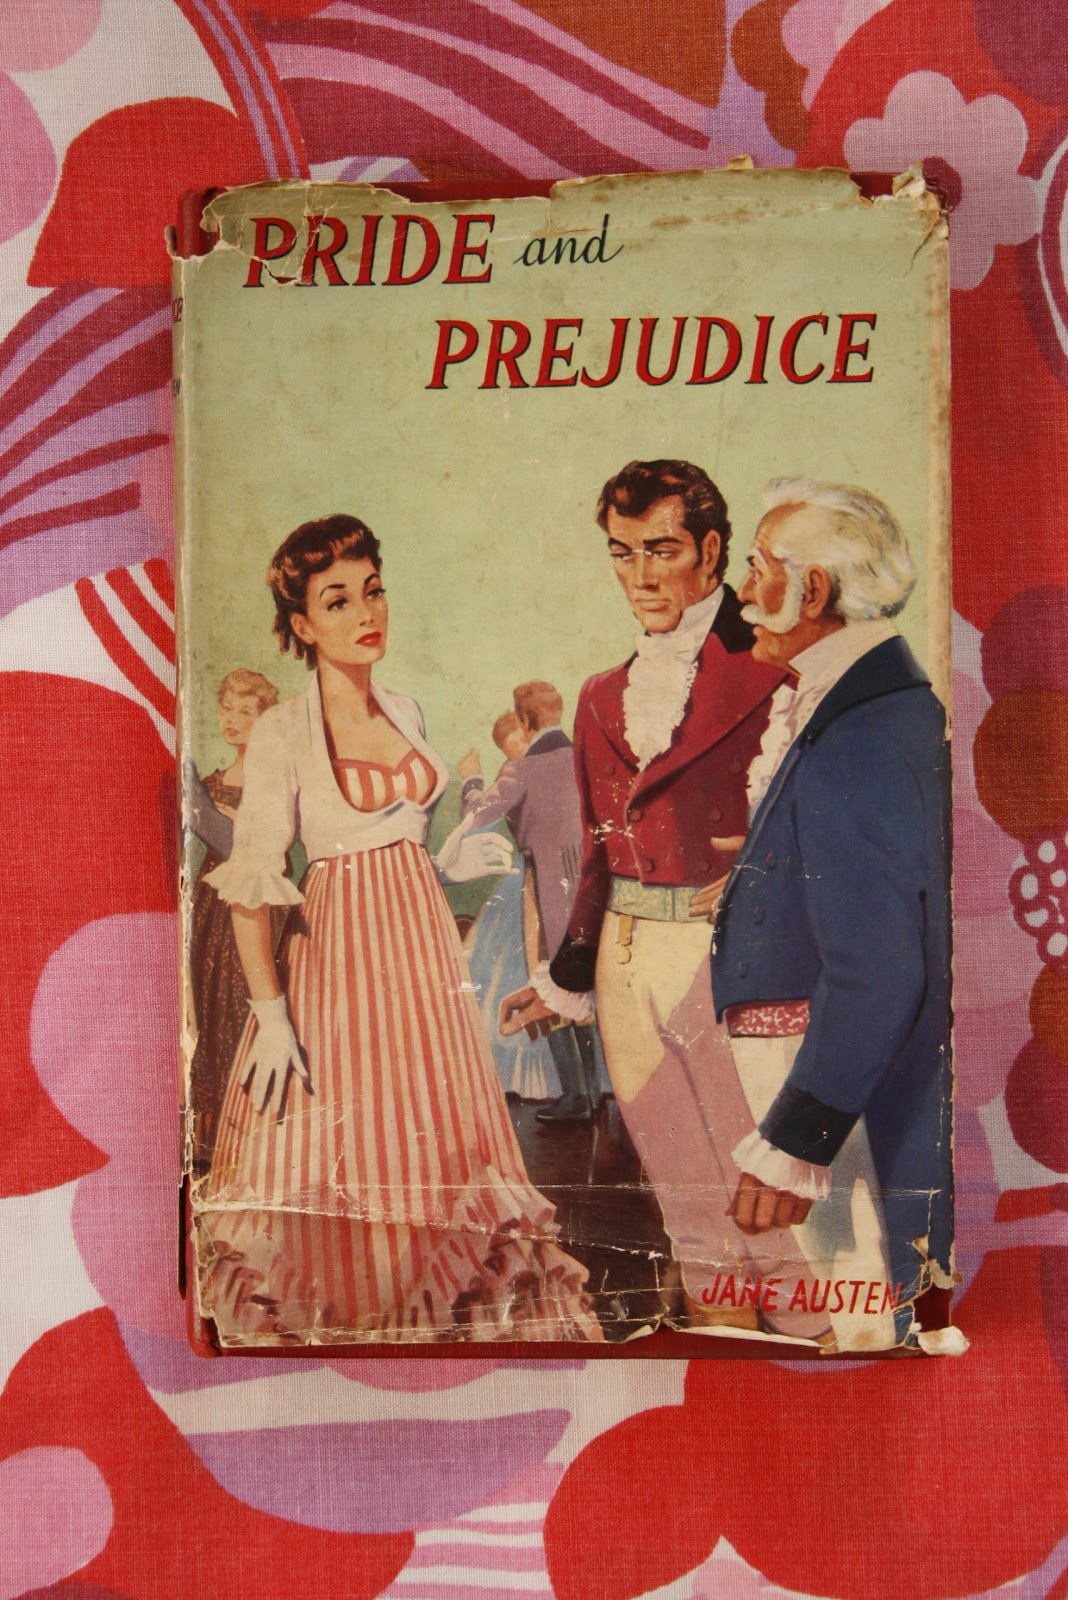 pride and prejudice essays on love and marriage The intricate nexus of marriage, money and love in jane austen's theme of love, money and marriage in jane more pride and prejudice by jane austen essays.